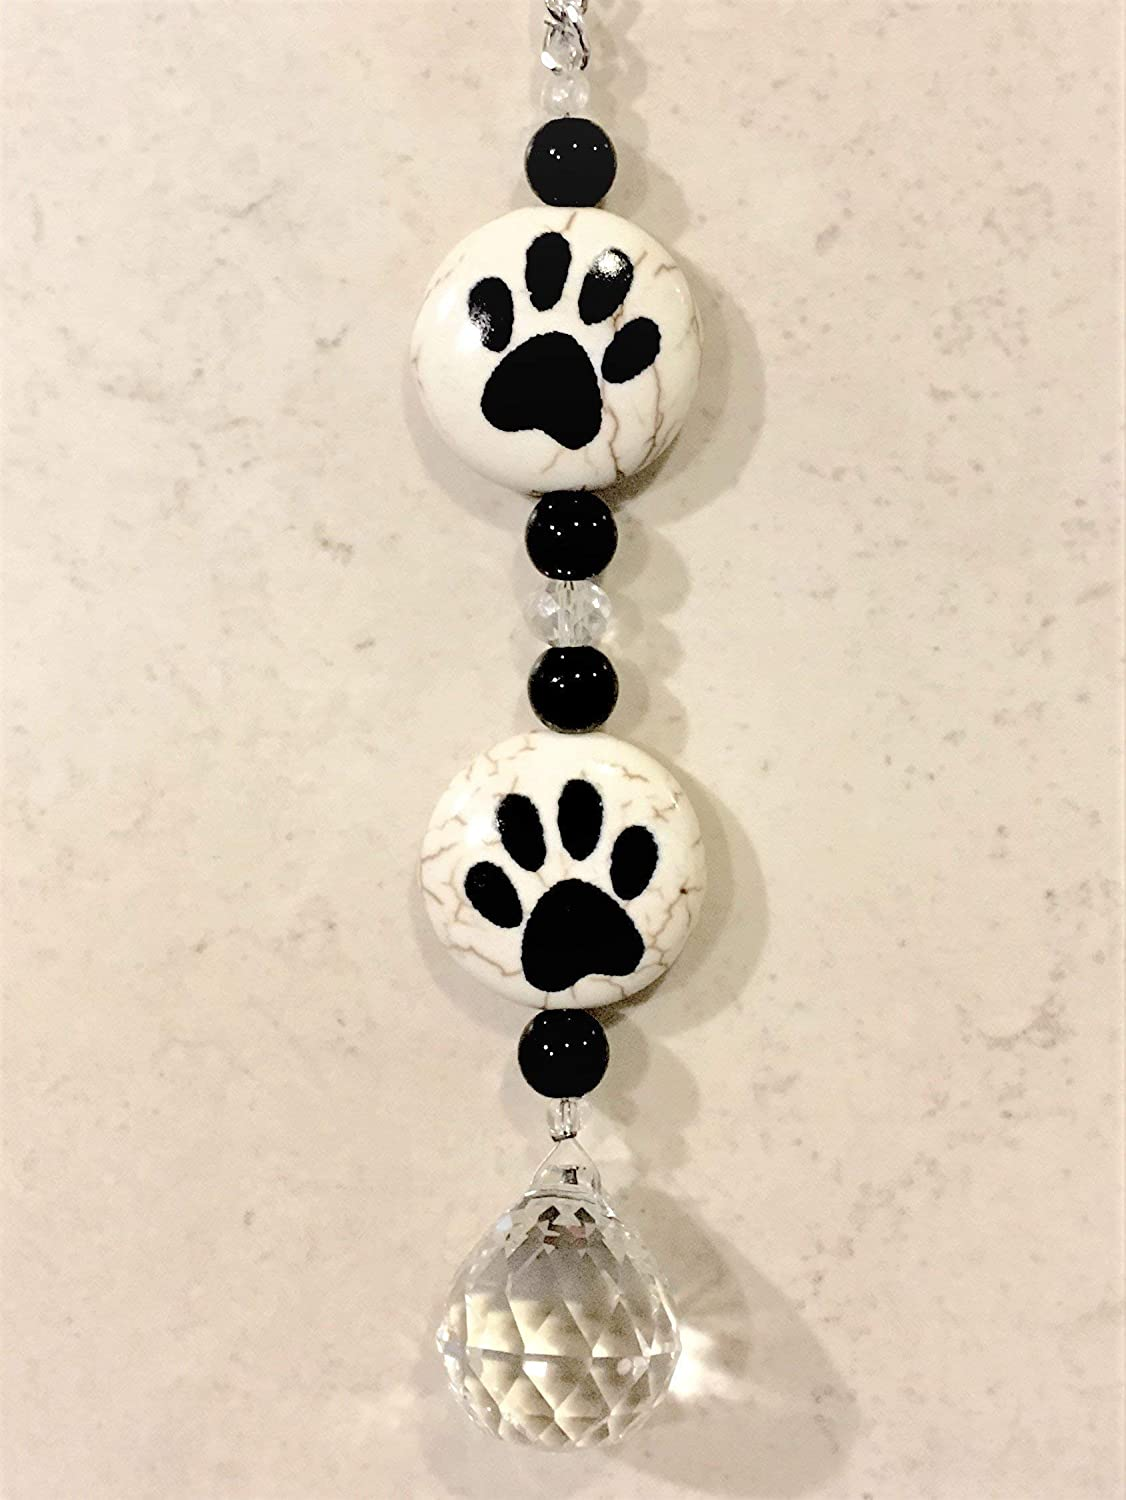 Rear View Mirror Crystal Car Charm,Animal Paw Print Sun Catcher,Dog Paw  Stone Hanging Prism,Crystal For Car Pet Print Ornament,Animal Dog Lover Gift